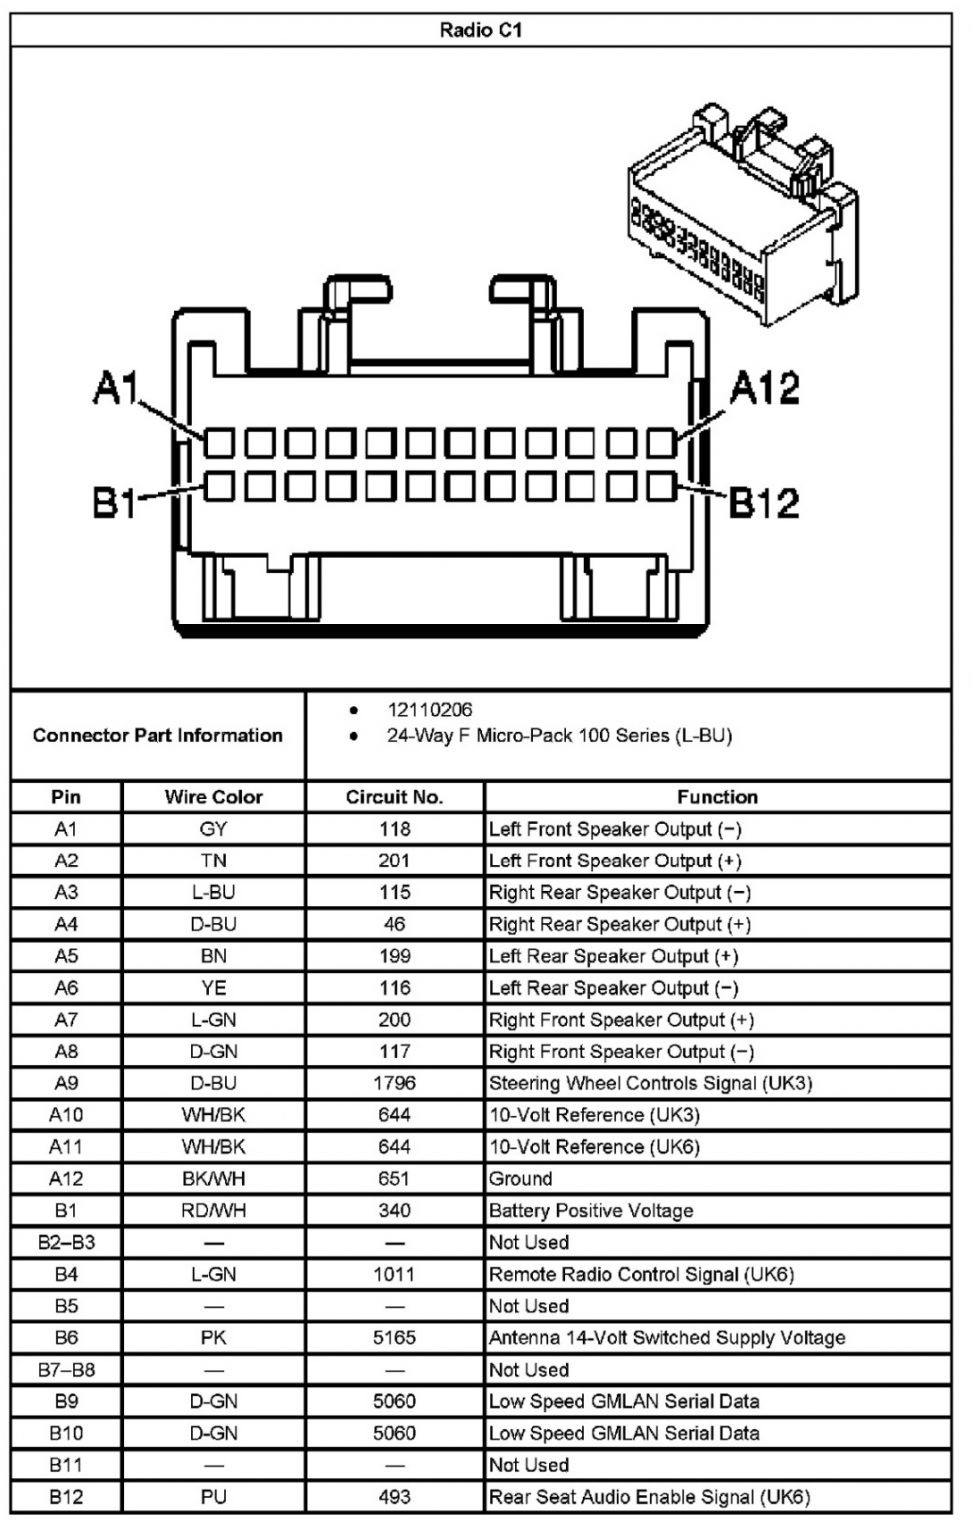 2005 tahoe radio wiring diagram 2004 chevy malibu radio wiring diagram | free wiring diagram